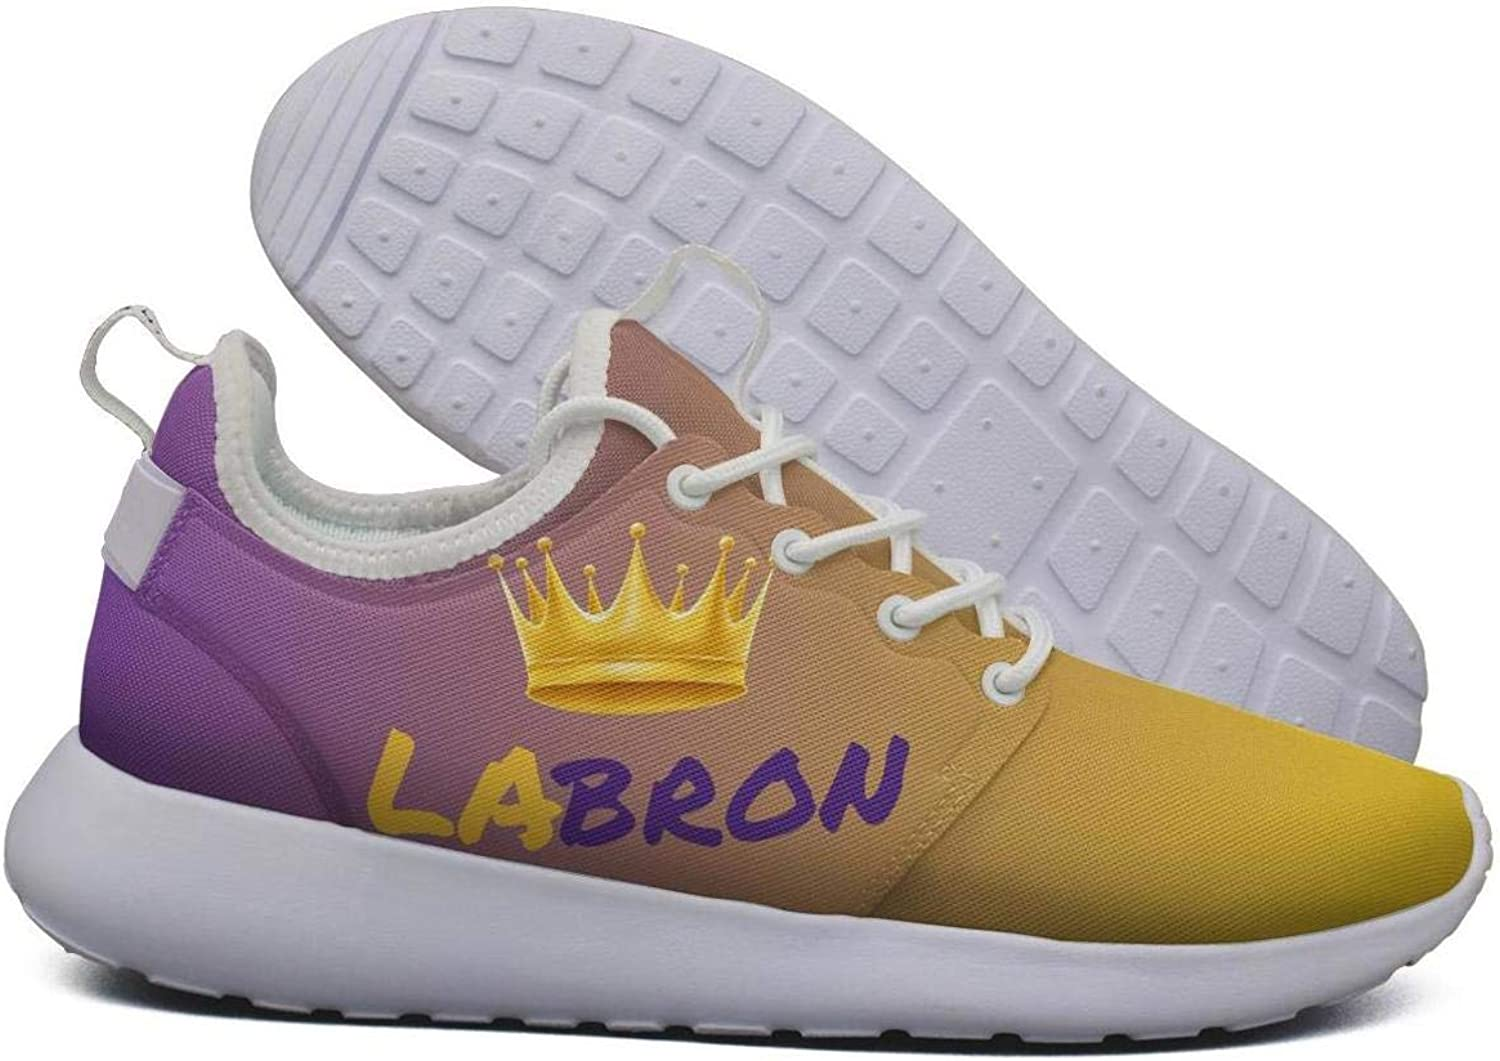 Womens Roshe Two Lightweight labron-gold-Crown Coll Road Running mesh shoes